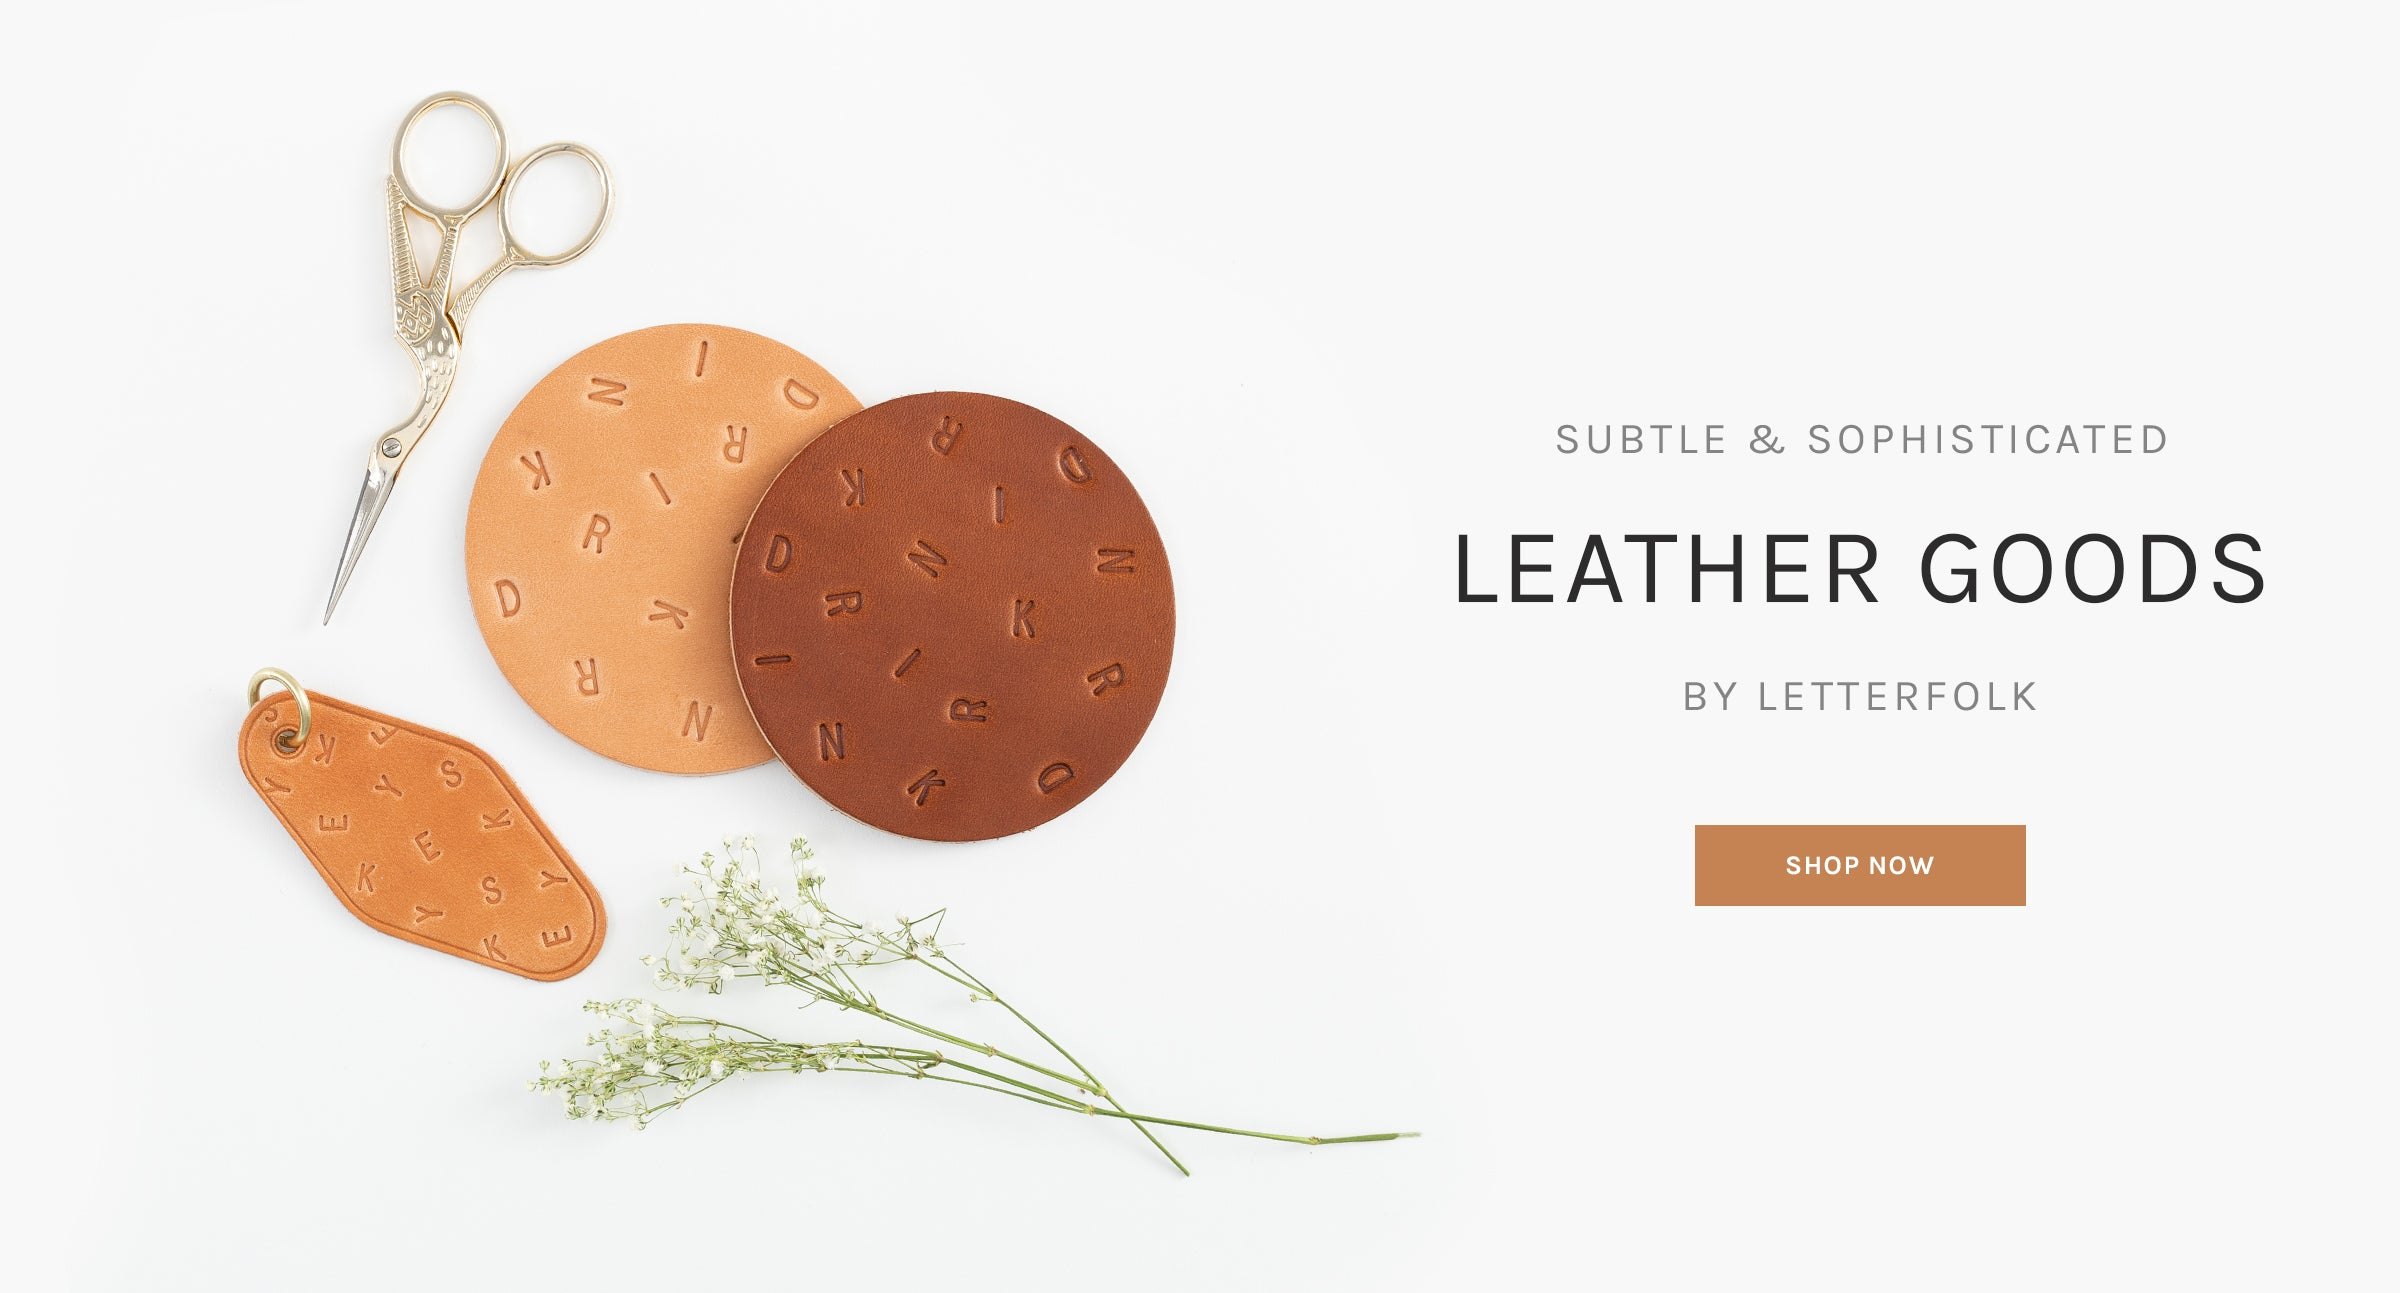 Handcrafted Linen Goods from Lithuania